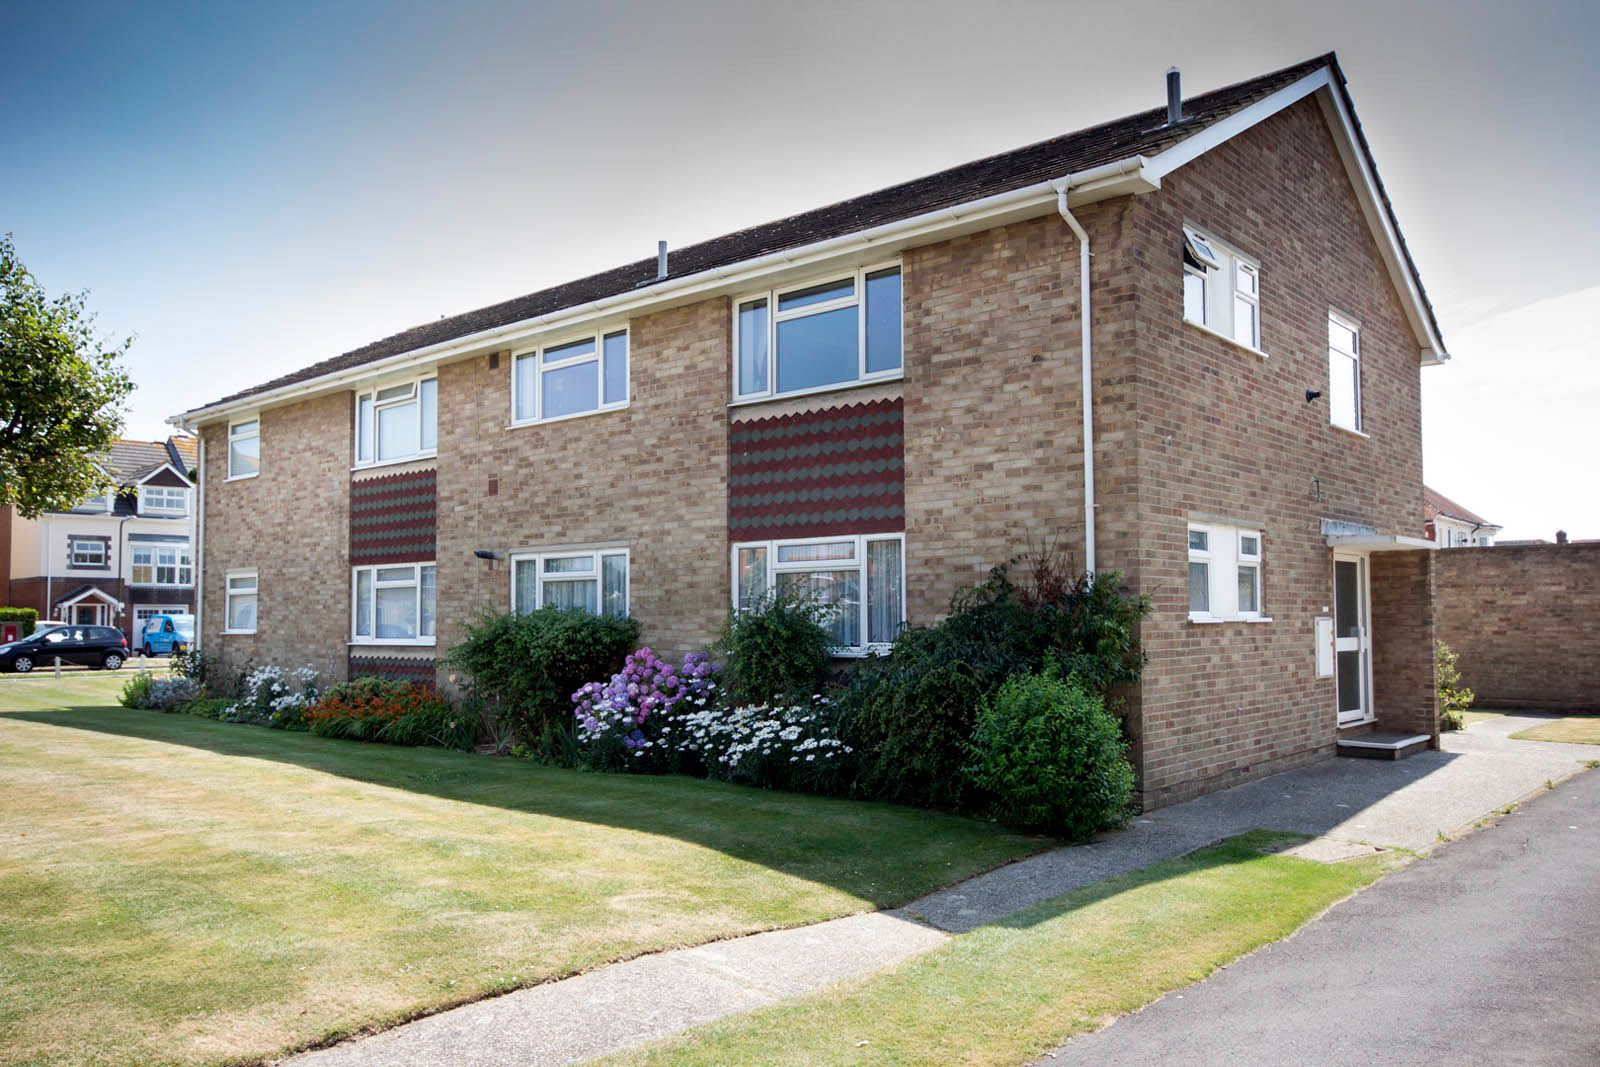 2 bed Apartment for sale in Rustington - Outside Area (Property Image 8)